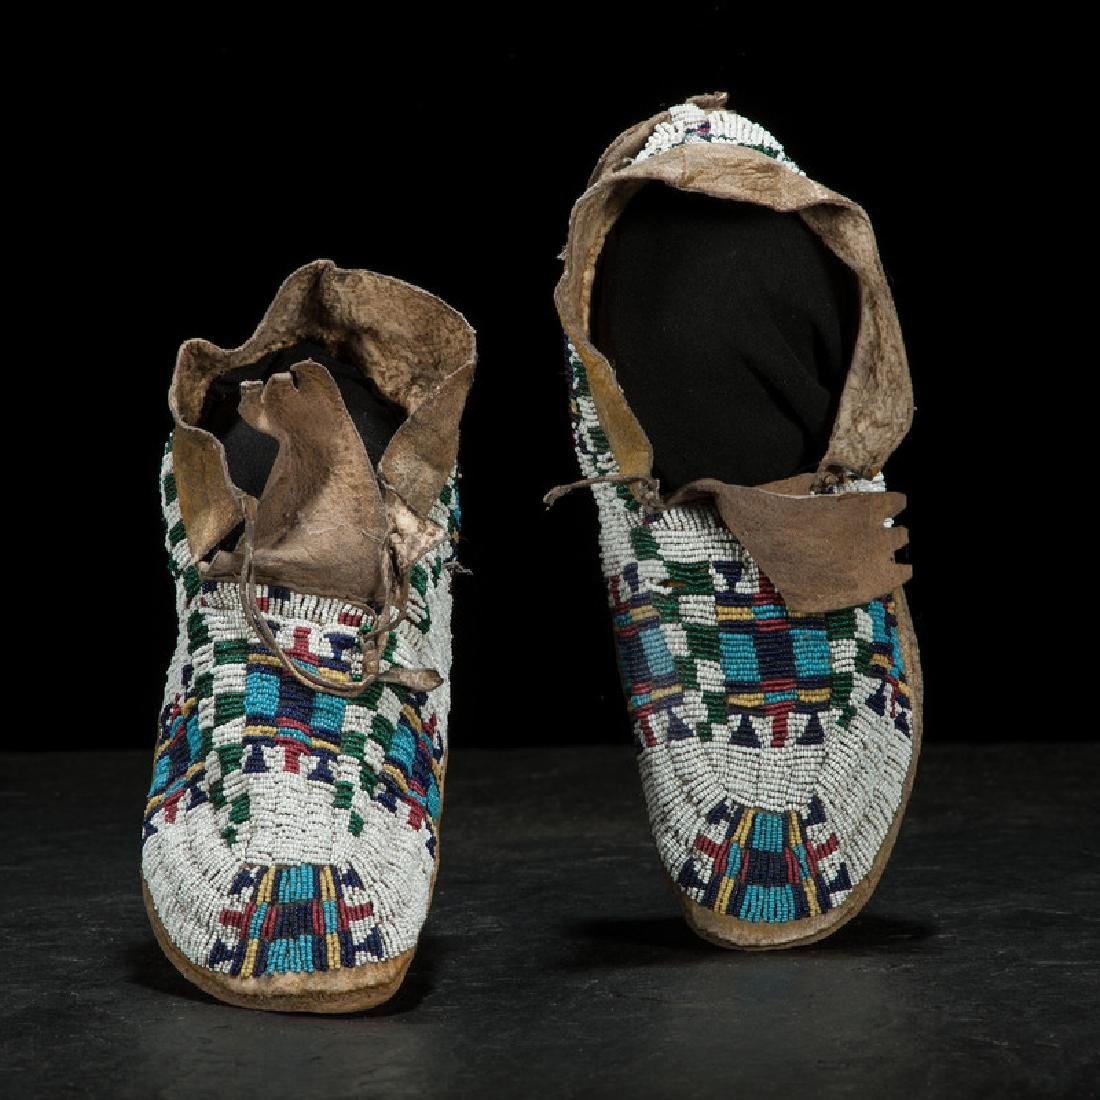 Cheyenne Child's Beaded Hide Moccasins